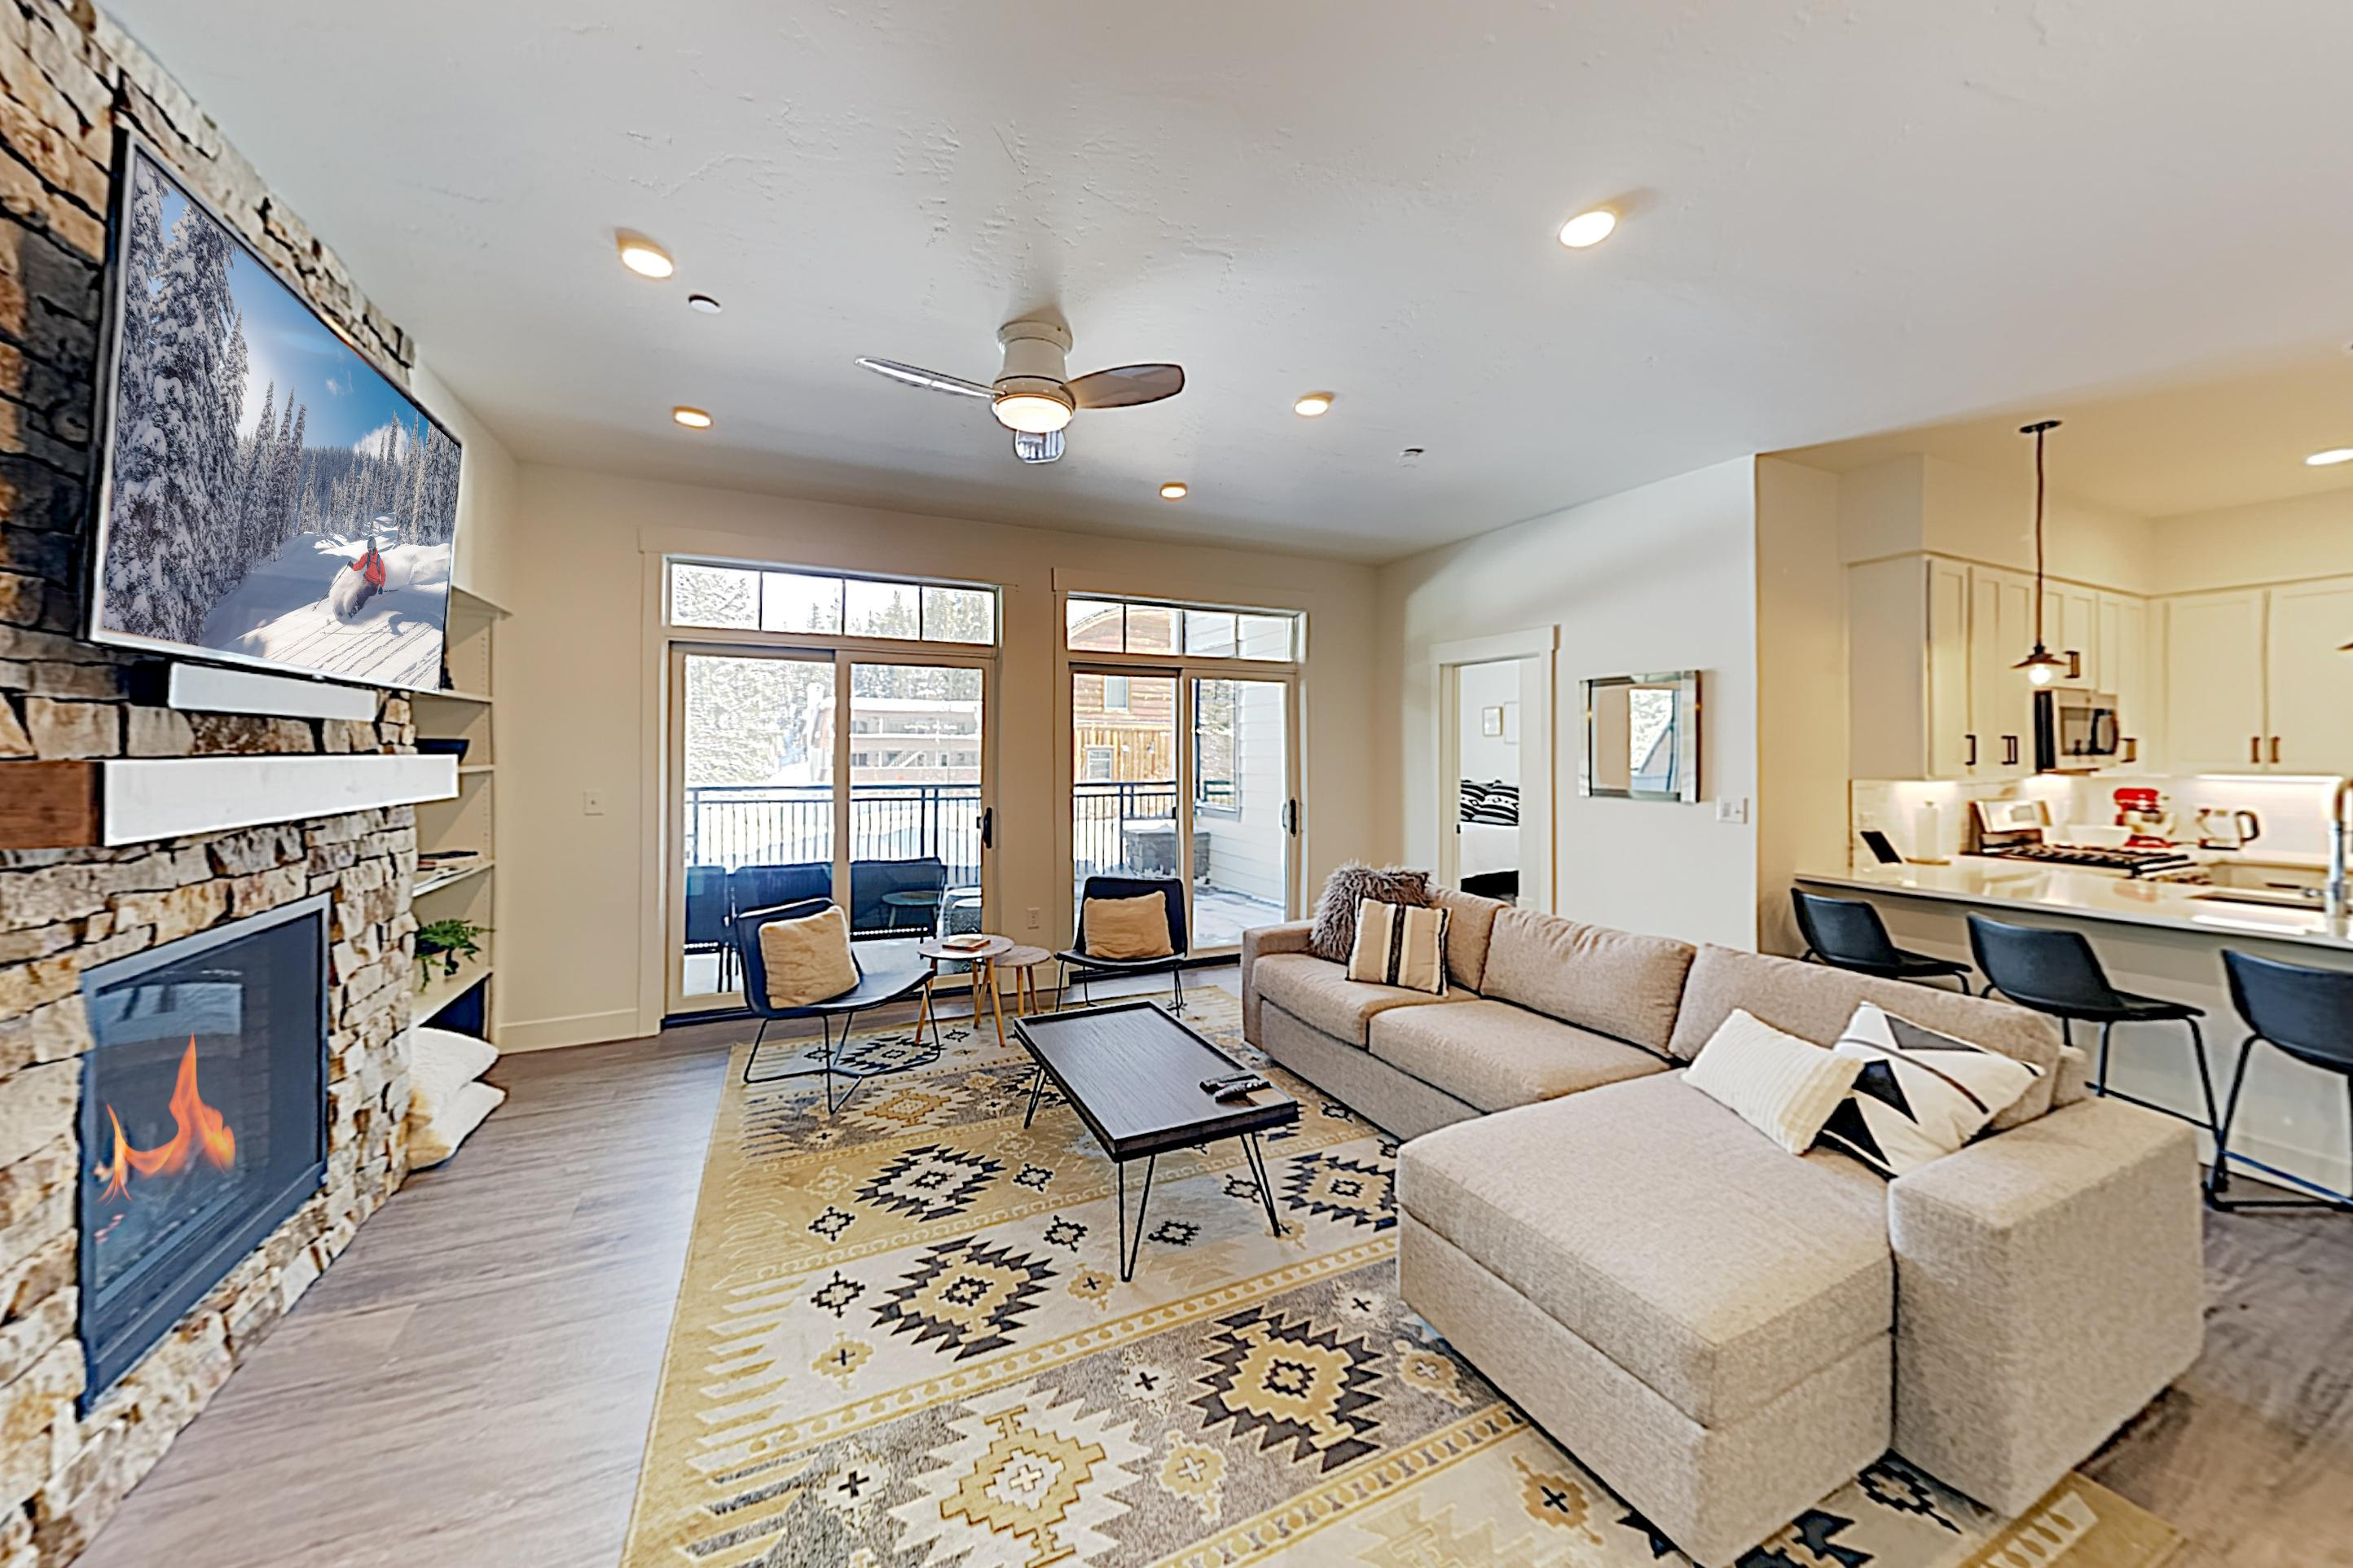 Welcome to Winter Park! This condo is professionally managed by TurnKey Vacation Rentals.